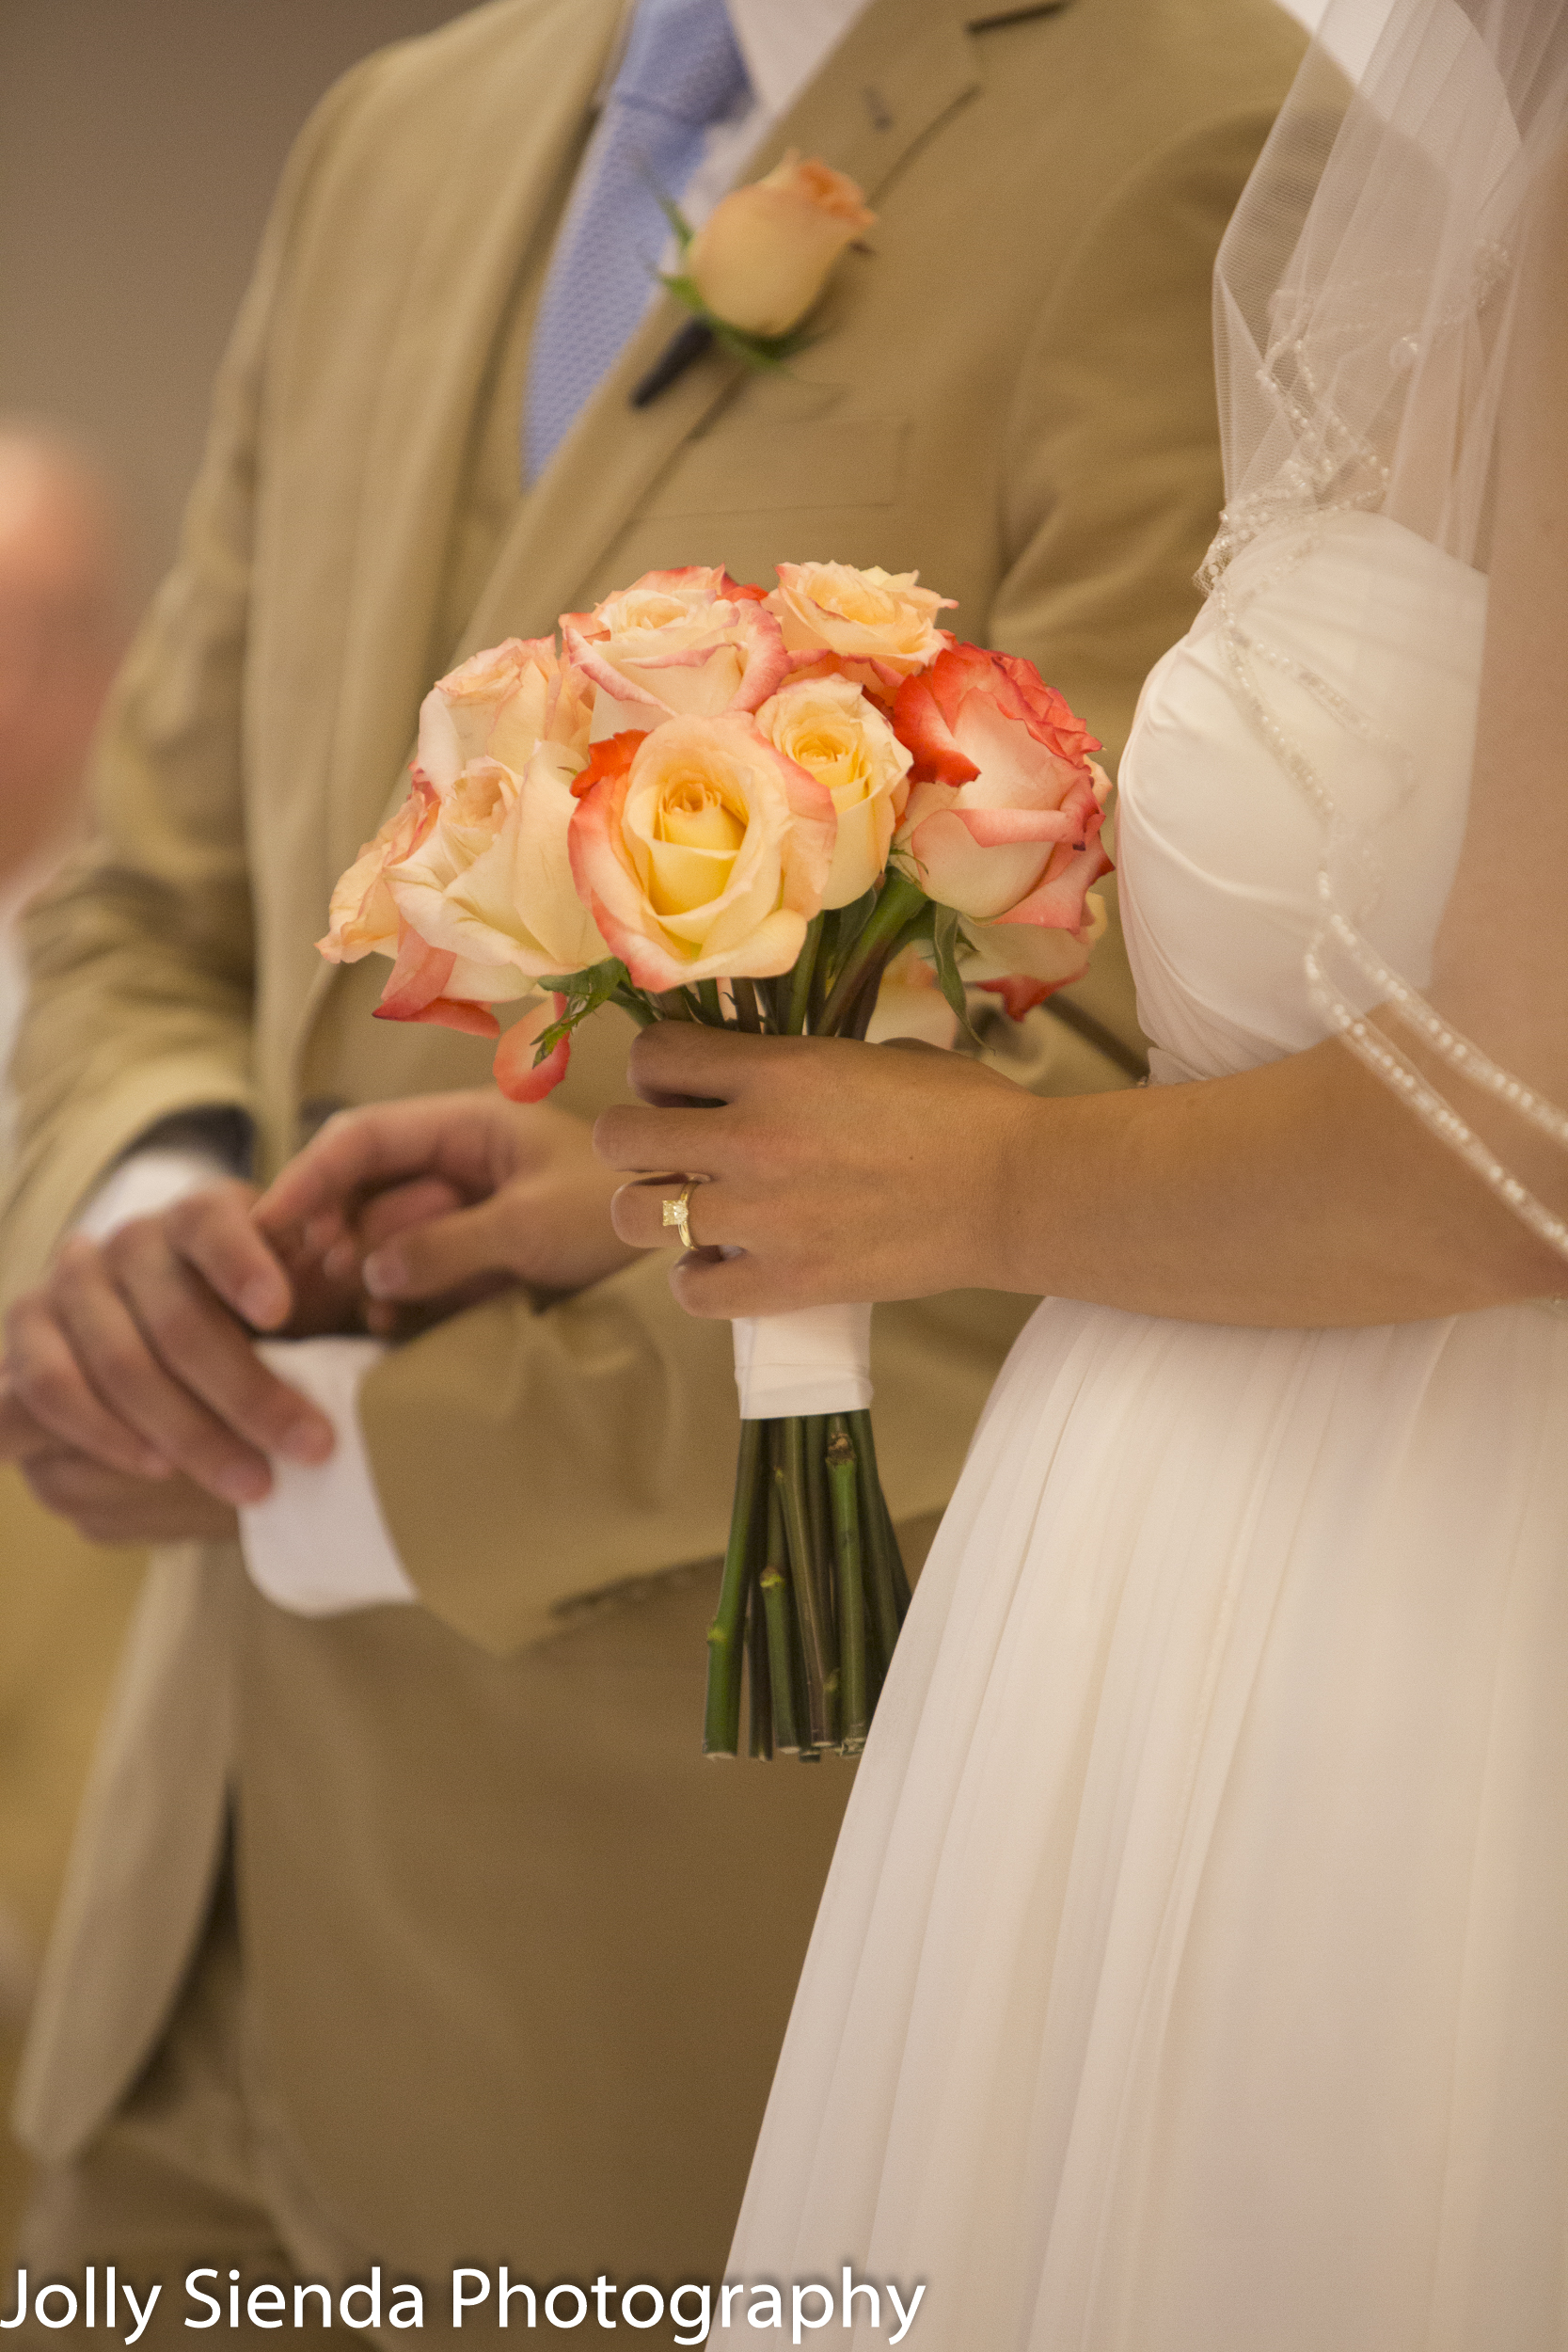 Wedding ring and roses, wedding photography